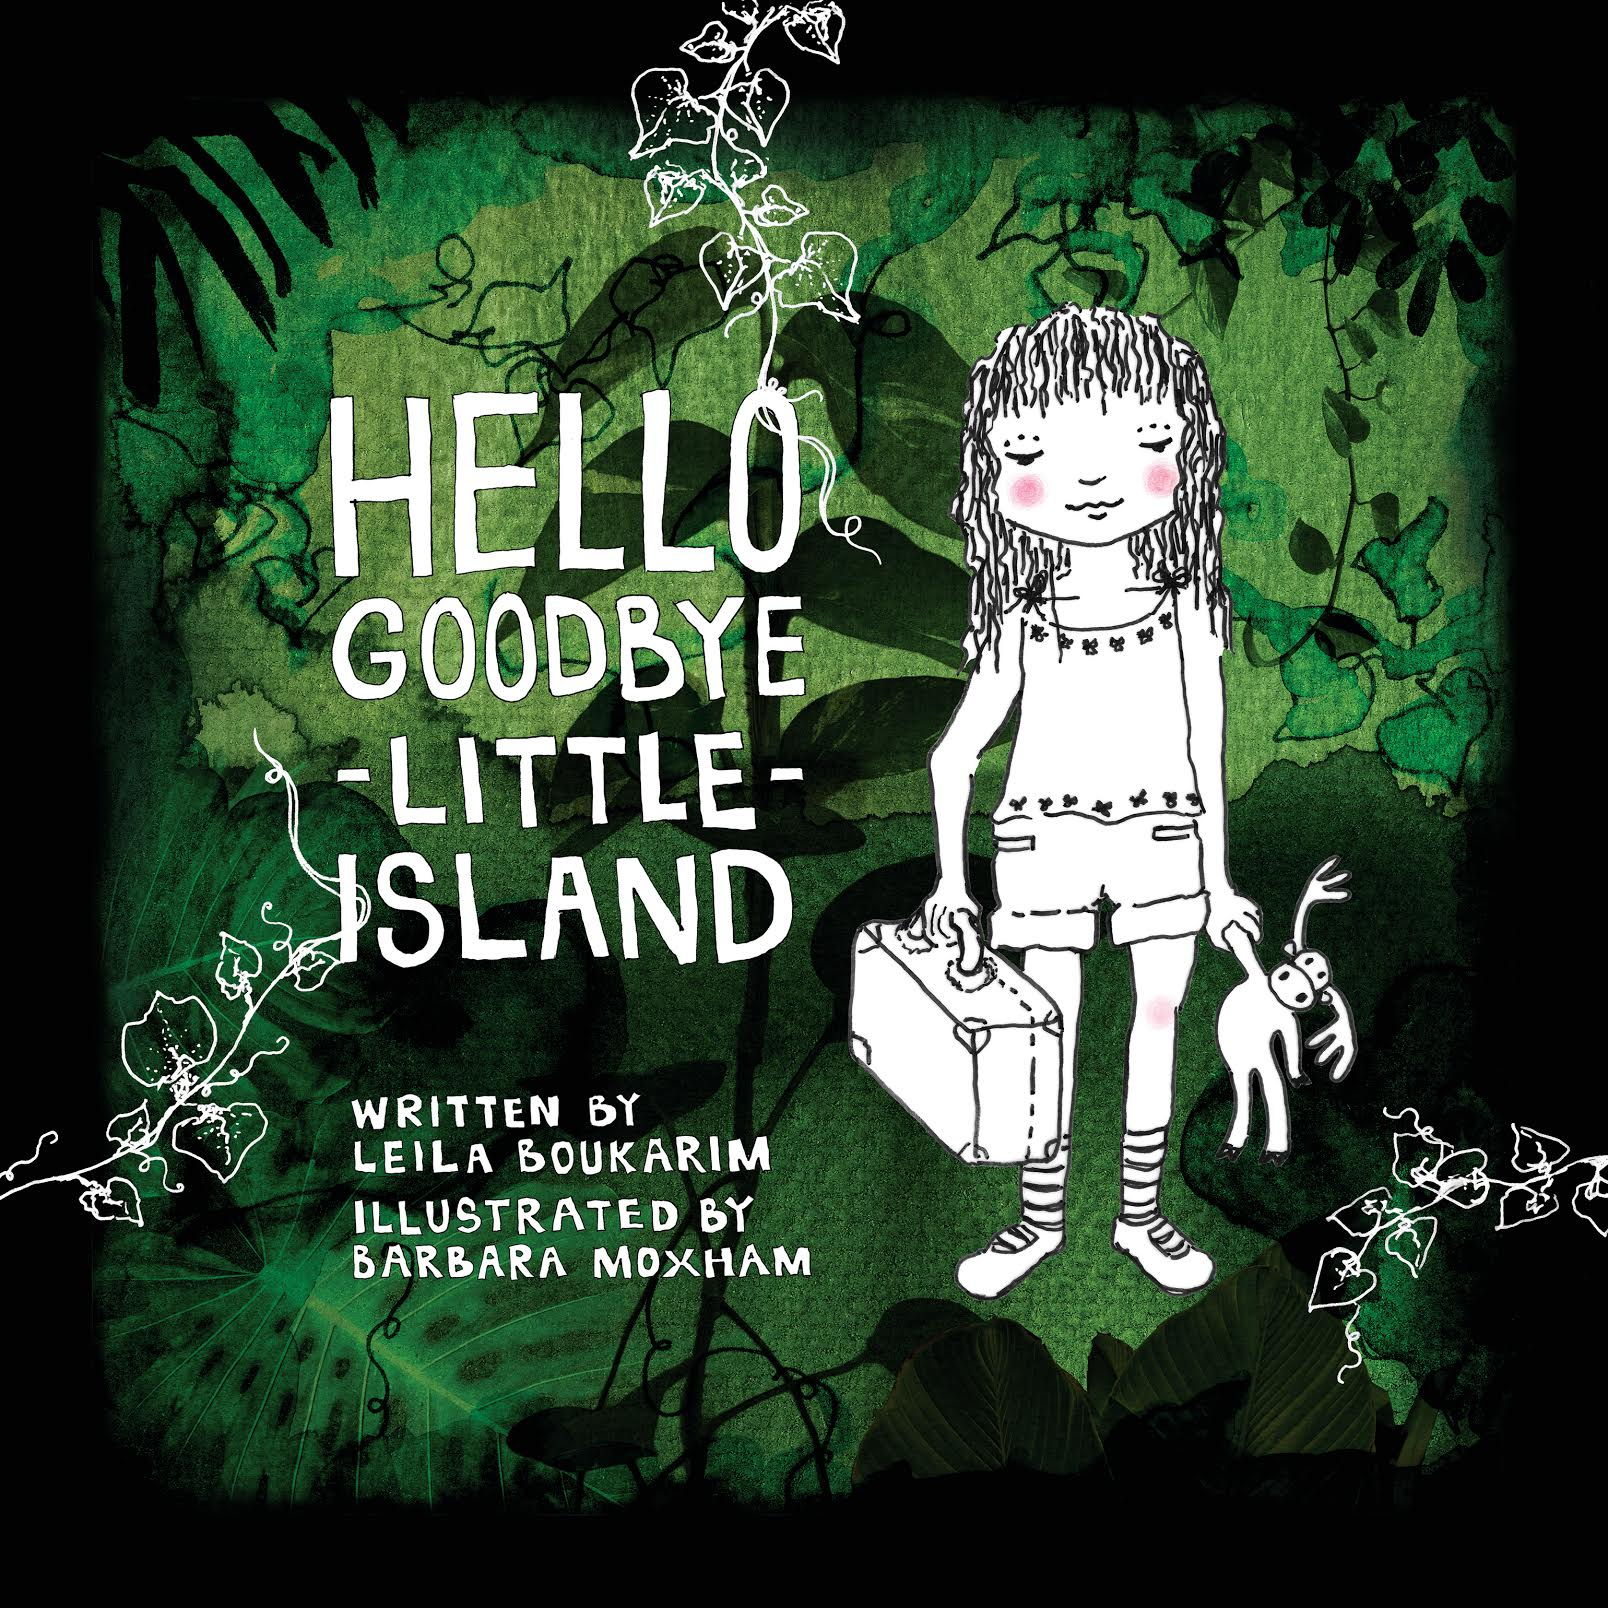 Hello, Goodbye Little Island By Leila Boukarim